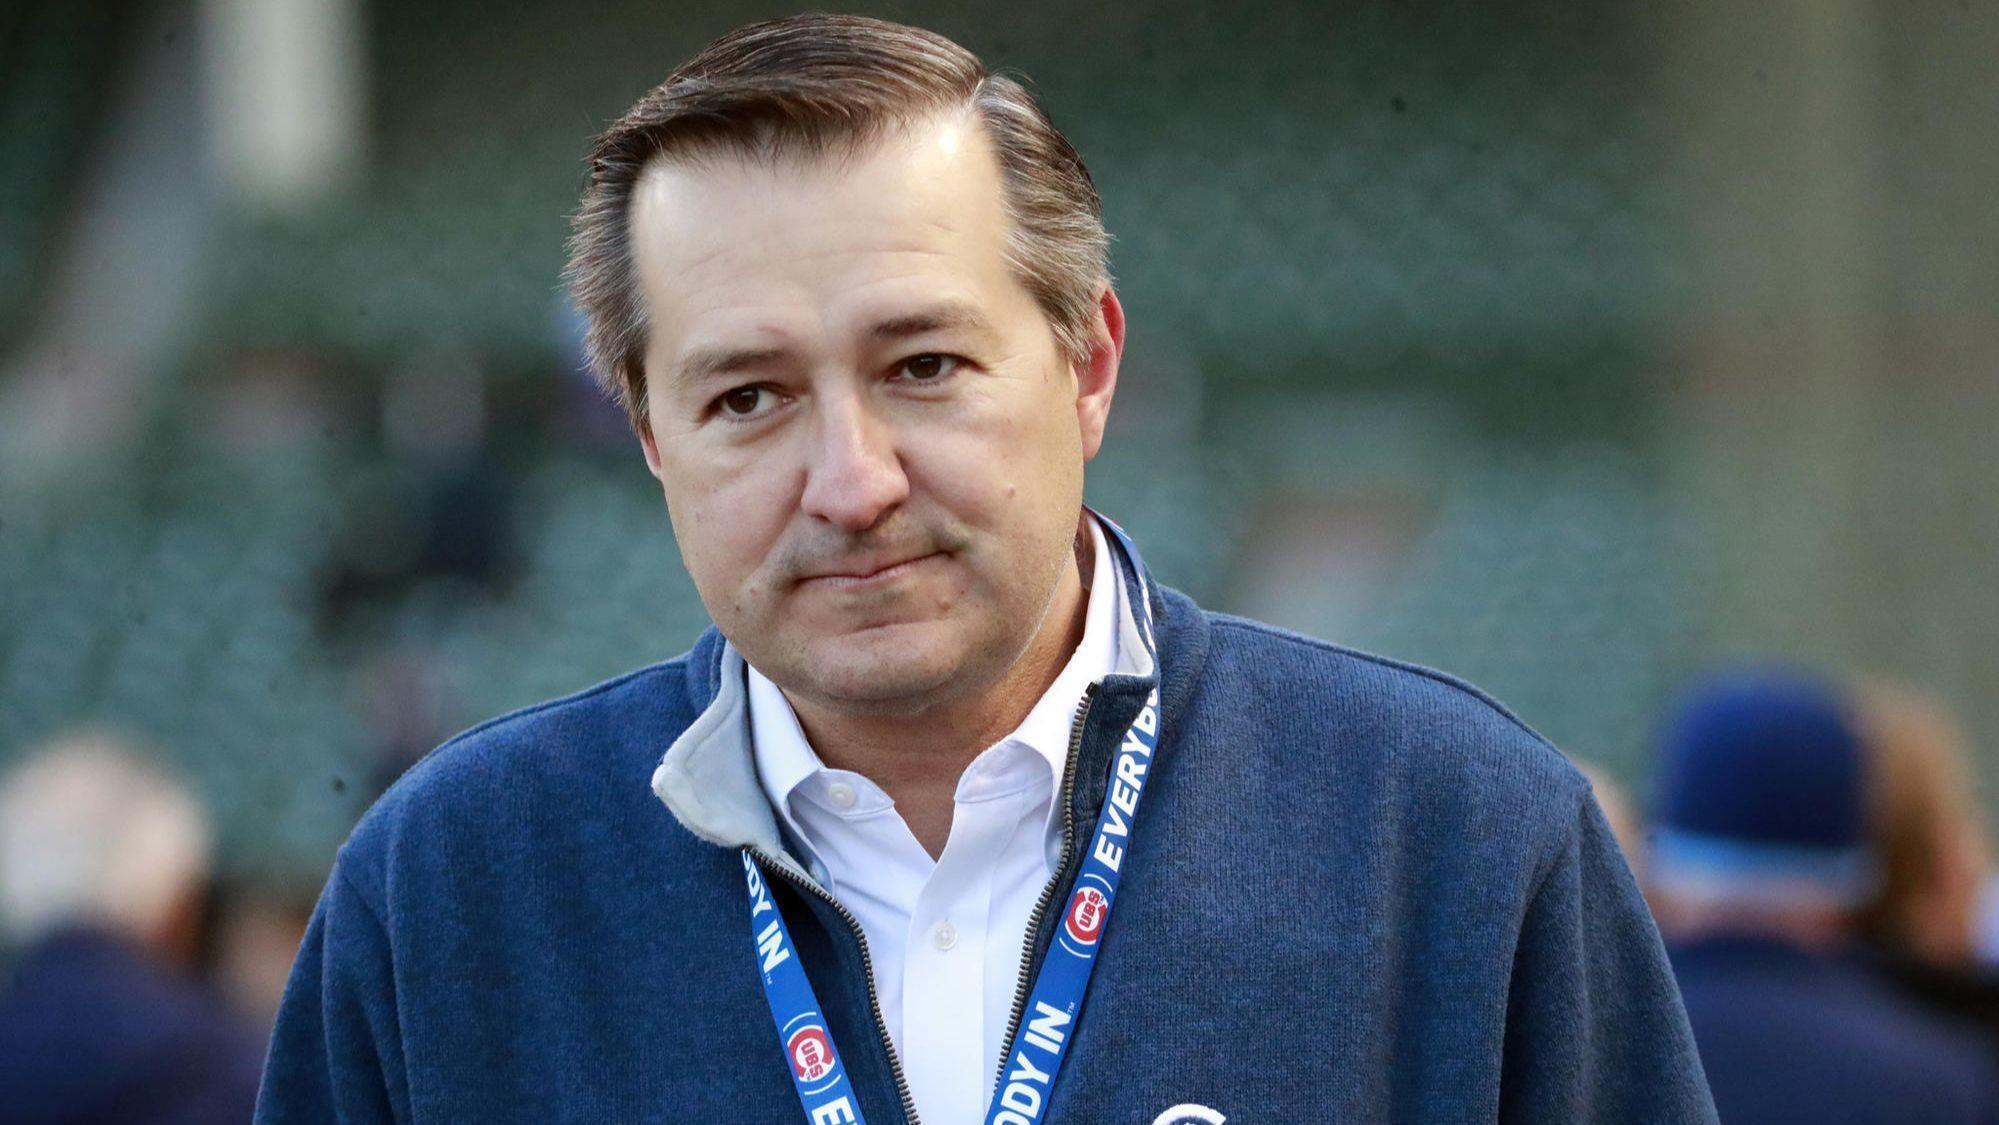 Cubs meet with Islamic relations group after Joe Ricketts' racist emails were revealed: 'What we're attempting to do is mend fences'